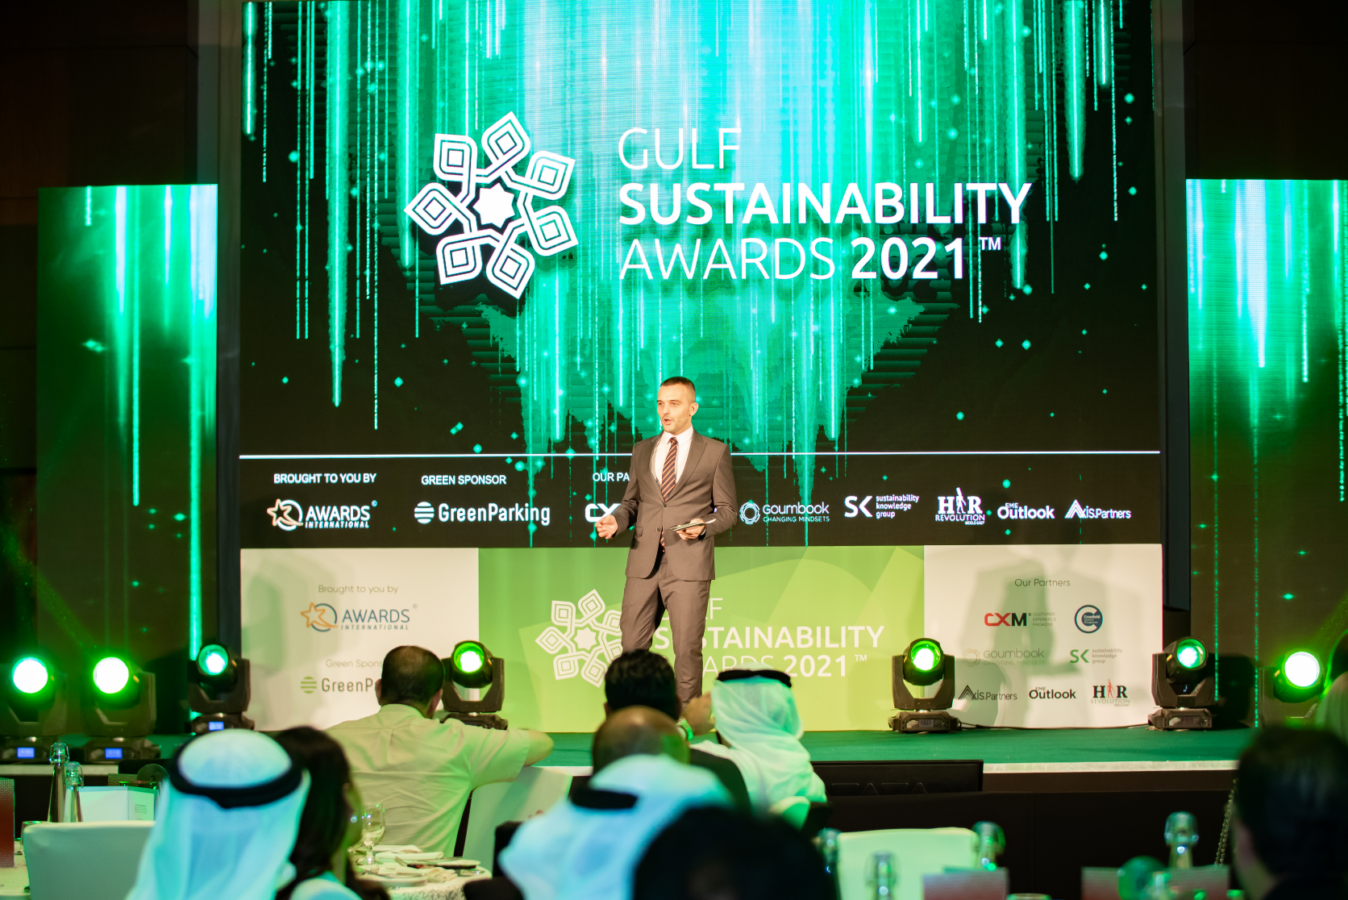 The photo shows the introduction of the Gulf Sustainability Awards 2021.